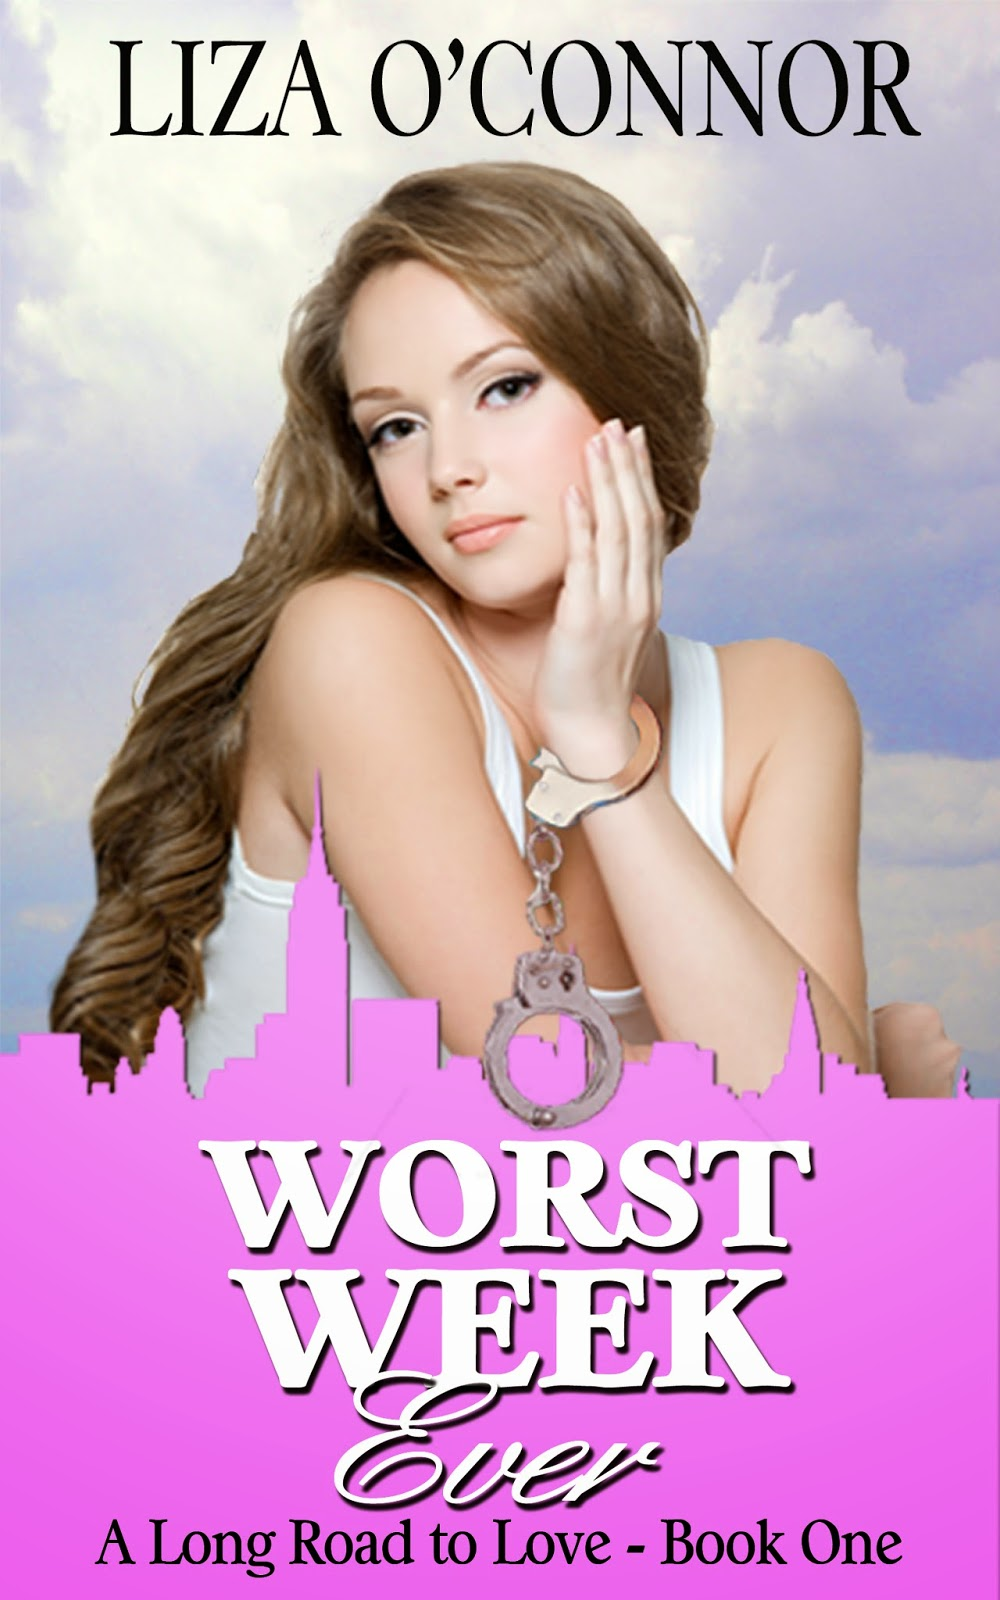 http://www.amazon.com/Worst-Week-Ever-Long-Road-ebook/dp/B00DSAJ7JO/ref=la_B00A82LHNO_1_4?s=books&ie=UTF8&qid=1395787648&sr=1-4